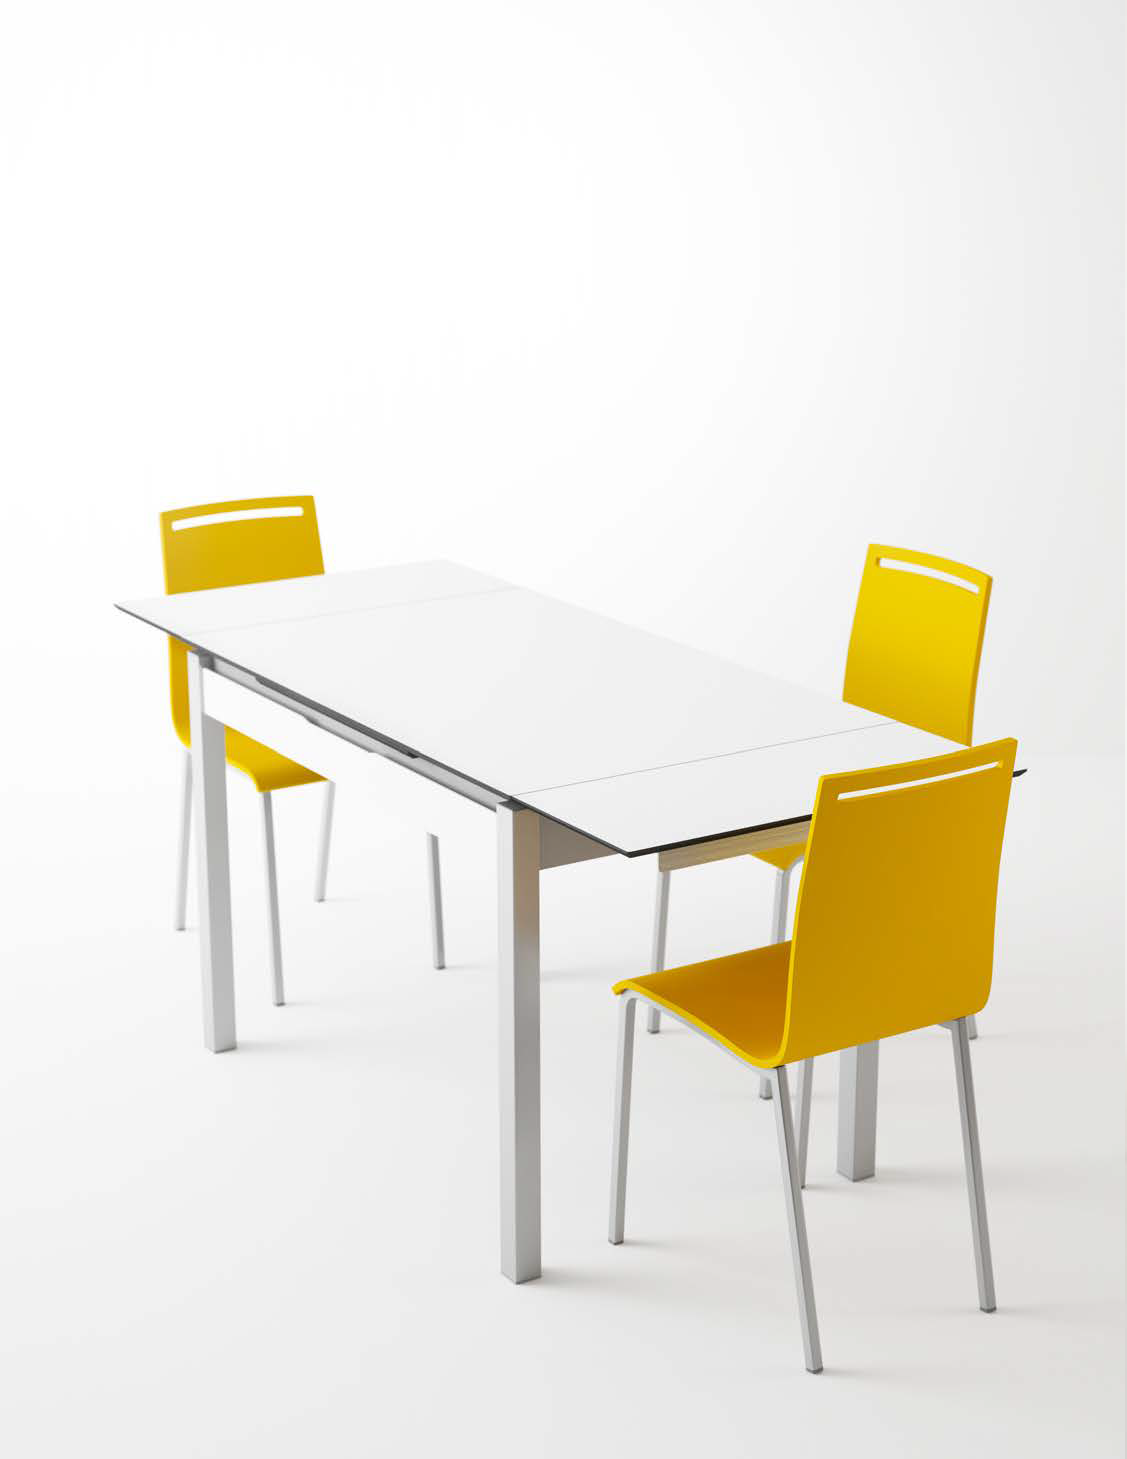 TABLES 7